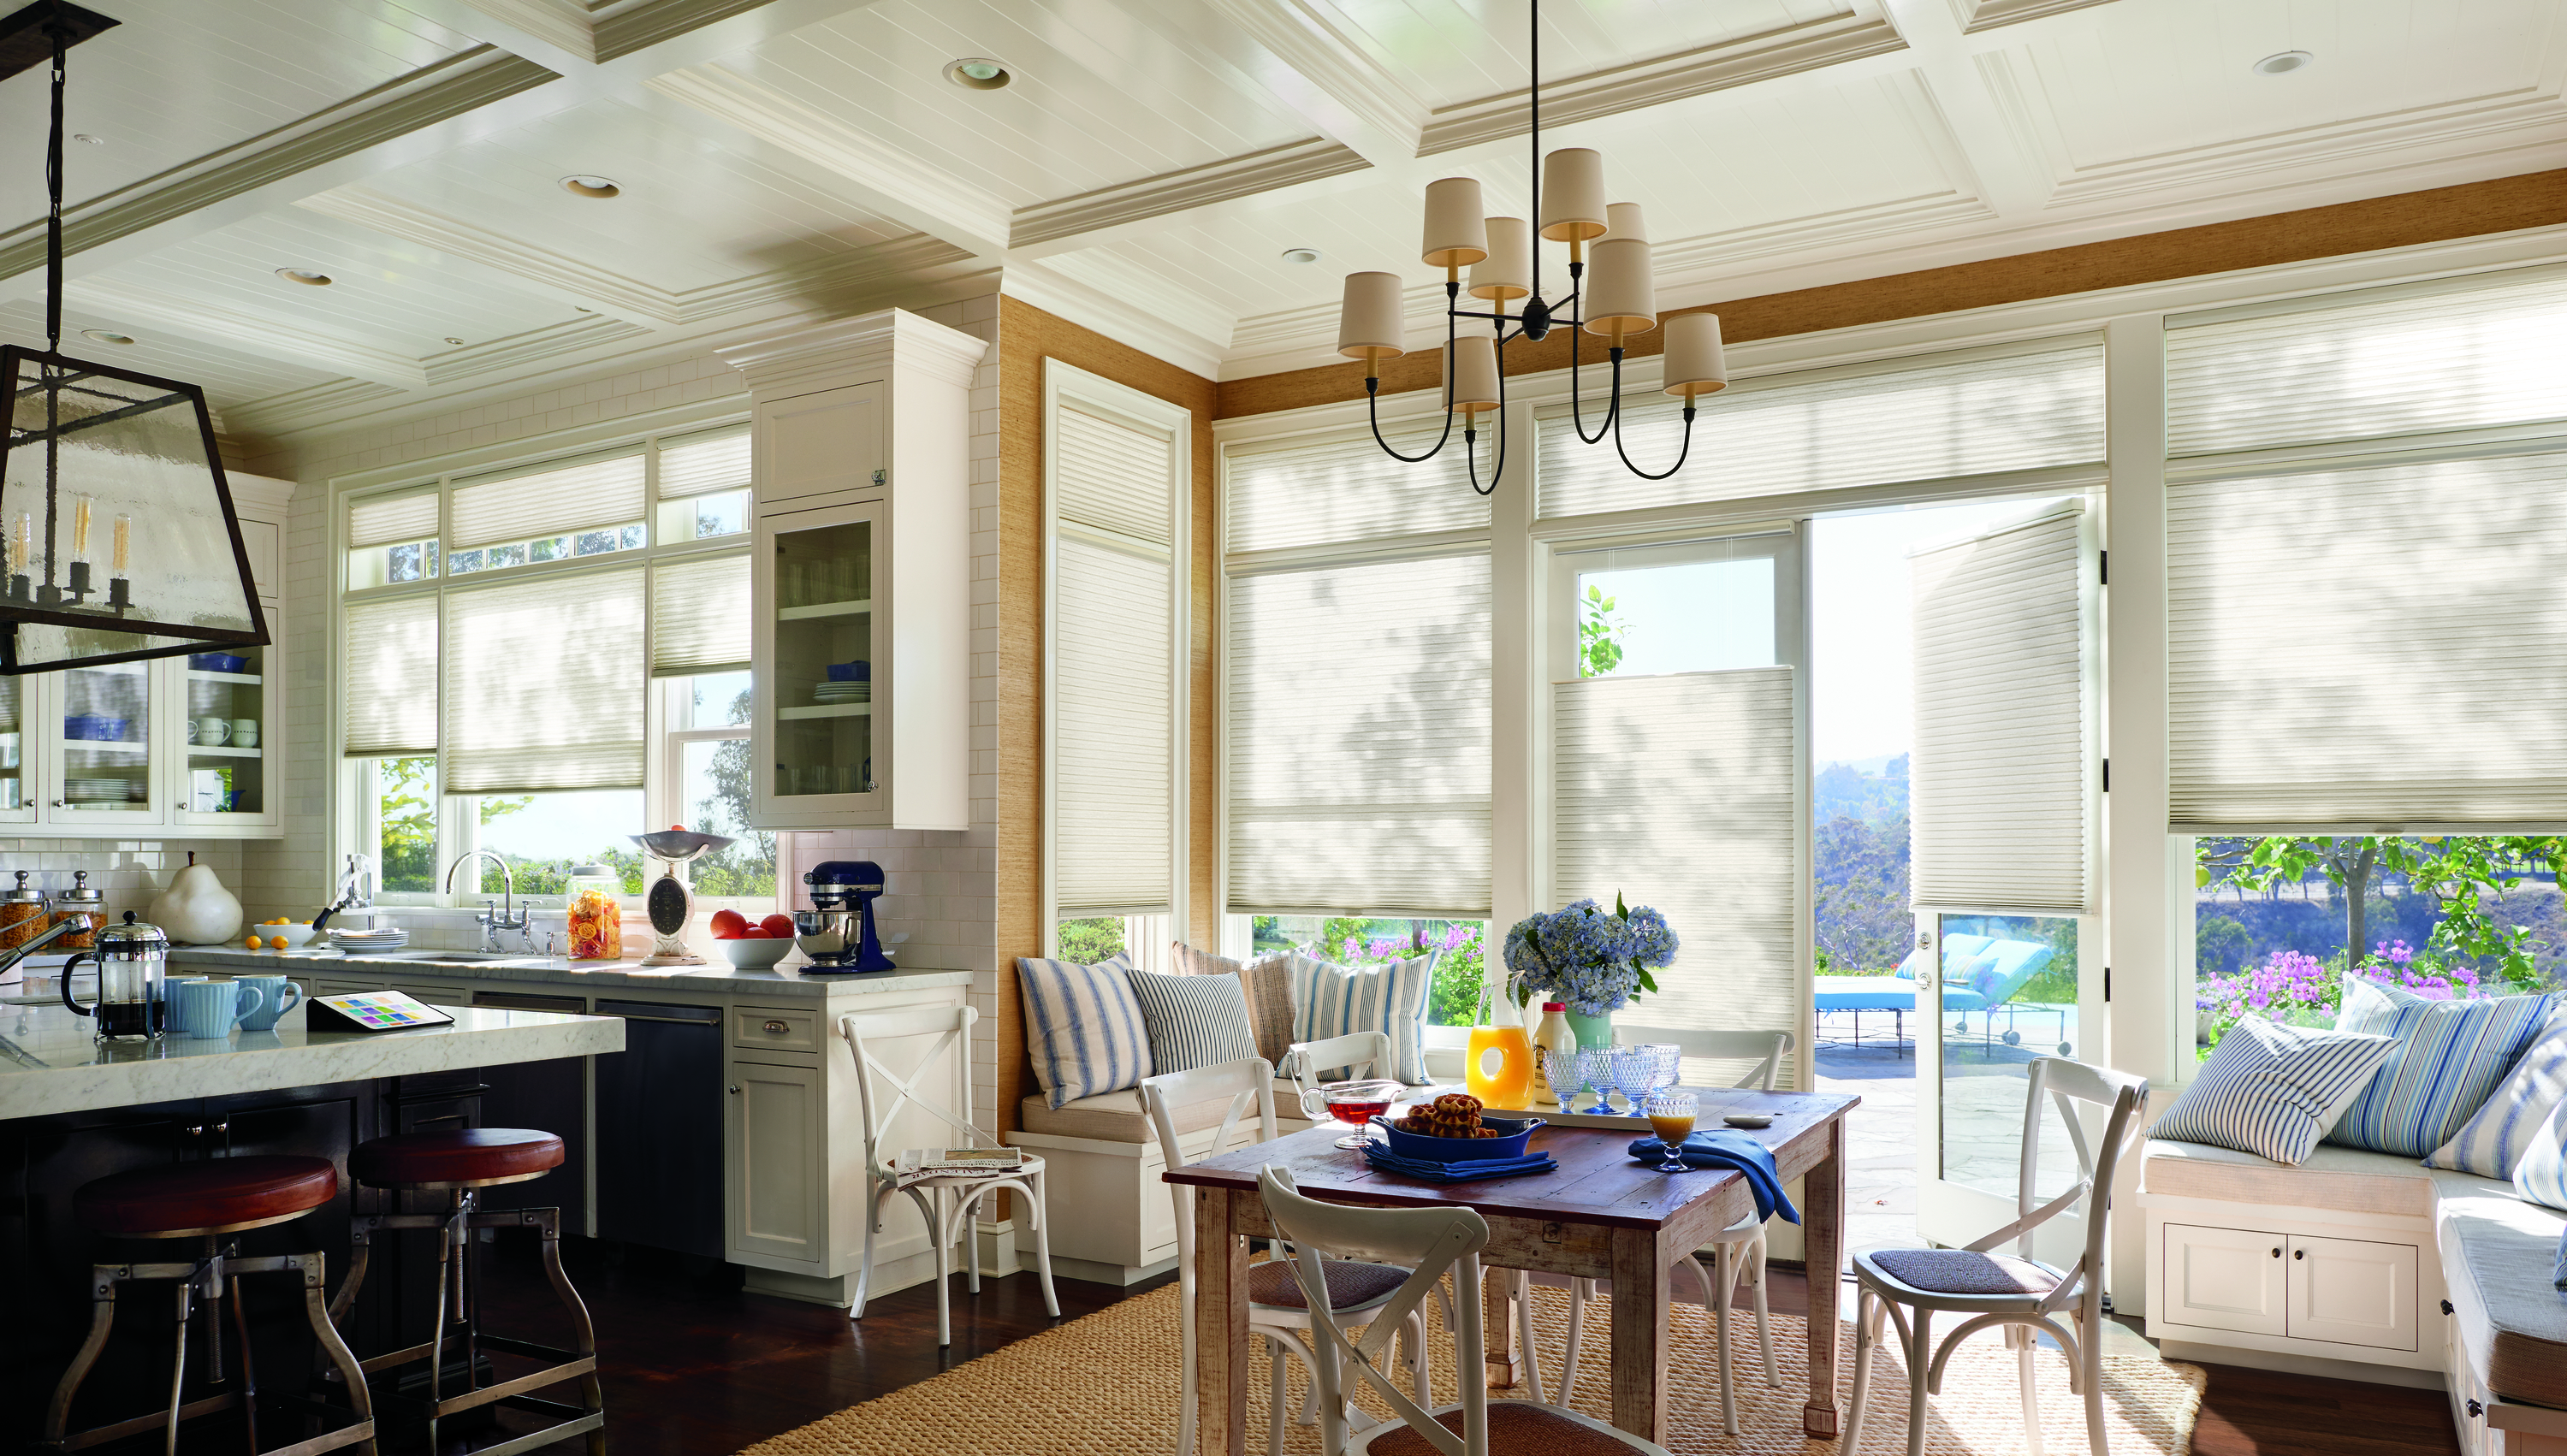 Hunter Douglas Duette Honeycomb shades in kitchen and dining room